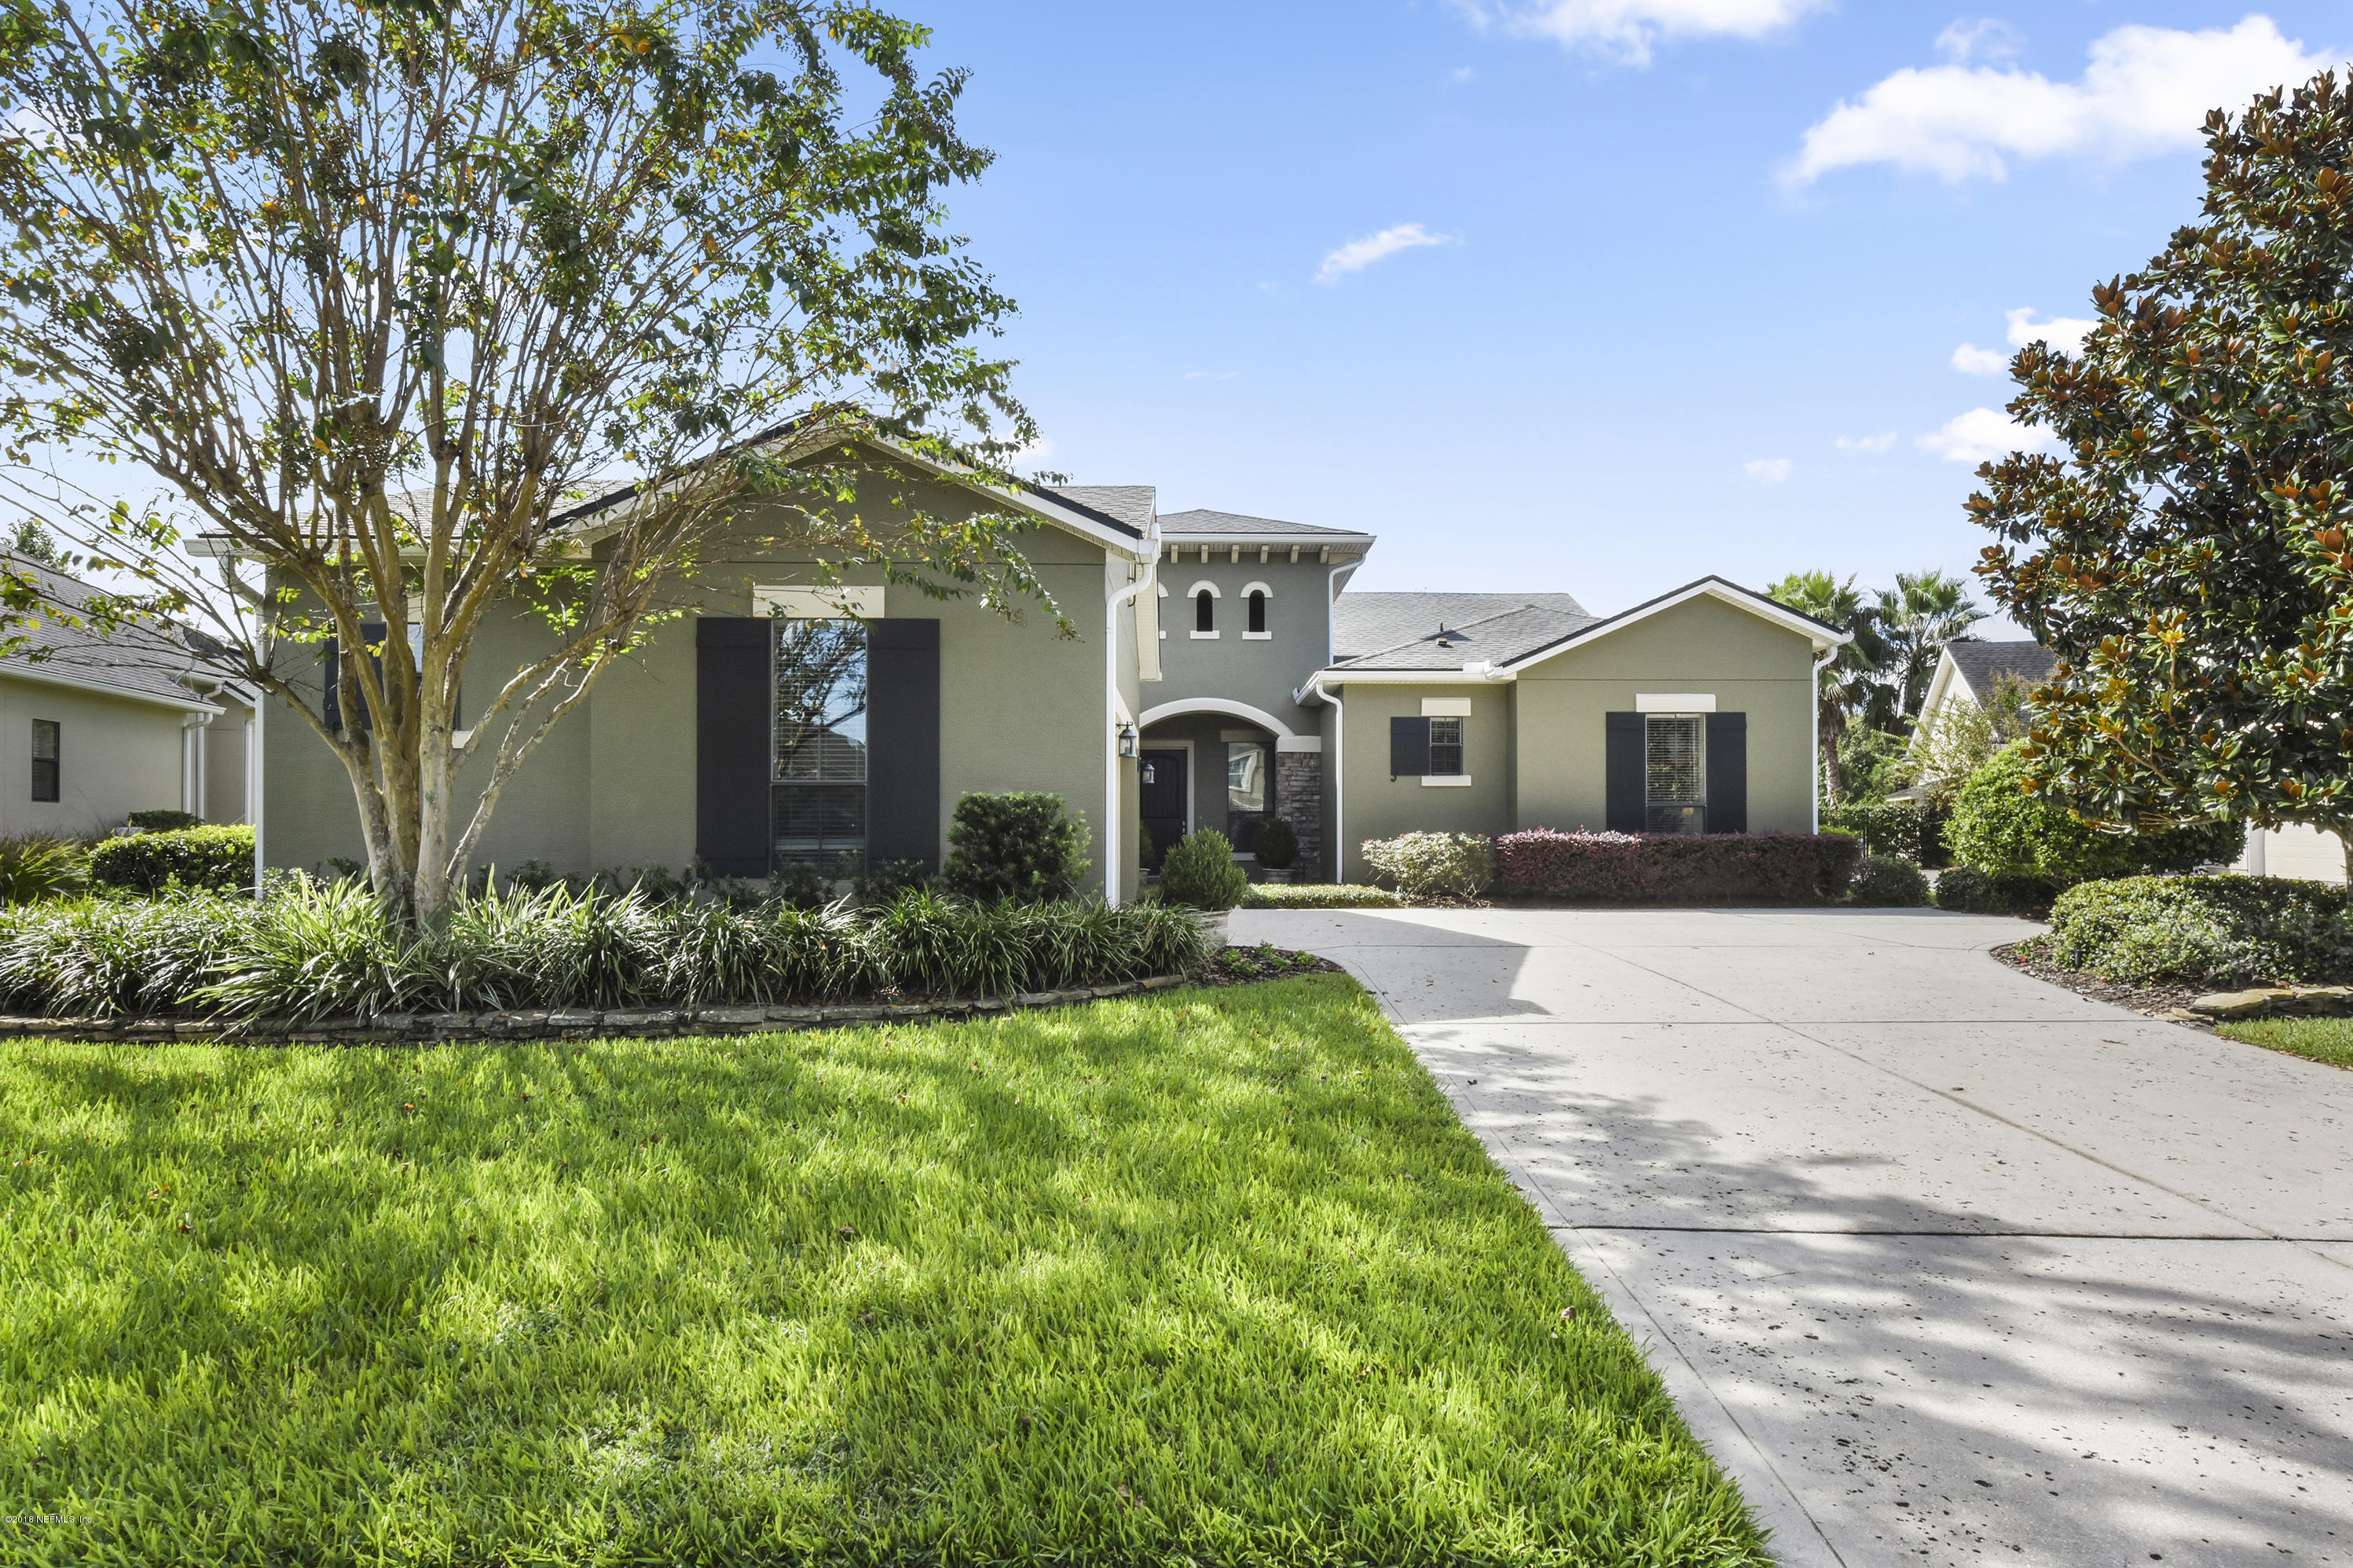 717 CASTLEDALE, ST JOHNS, FLORIDA 32259, 4 Bedrooms Bedrooms, ,3 BathroomsBathrooms,Residential - single family,For sale,CASTLEDALE,959594